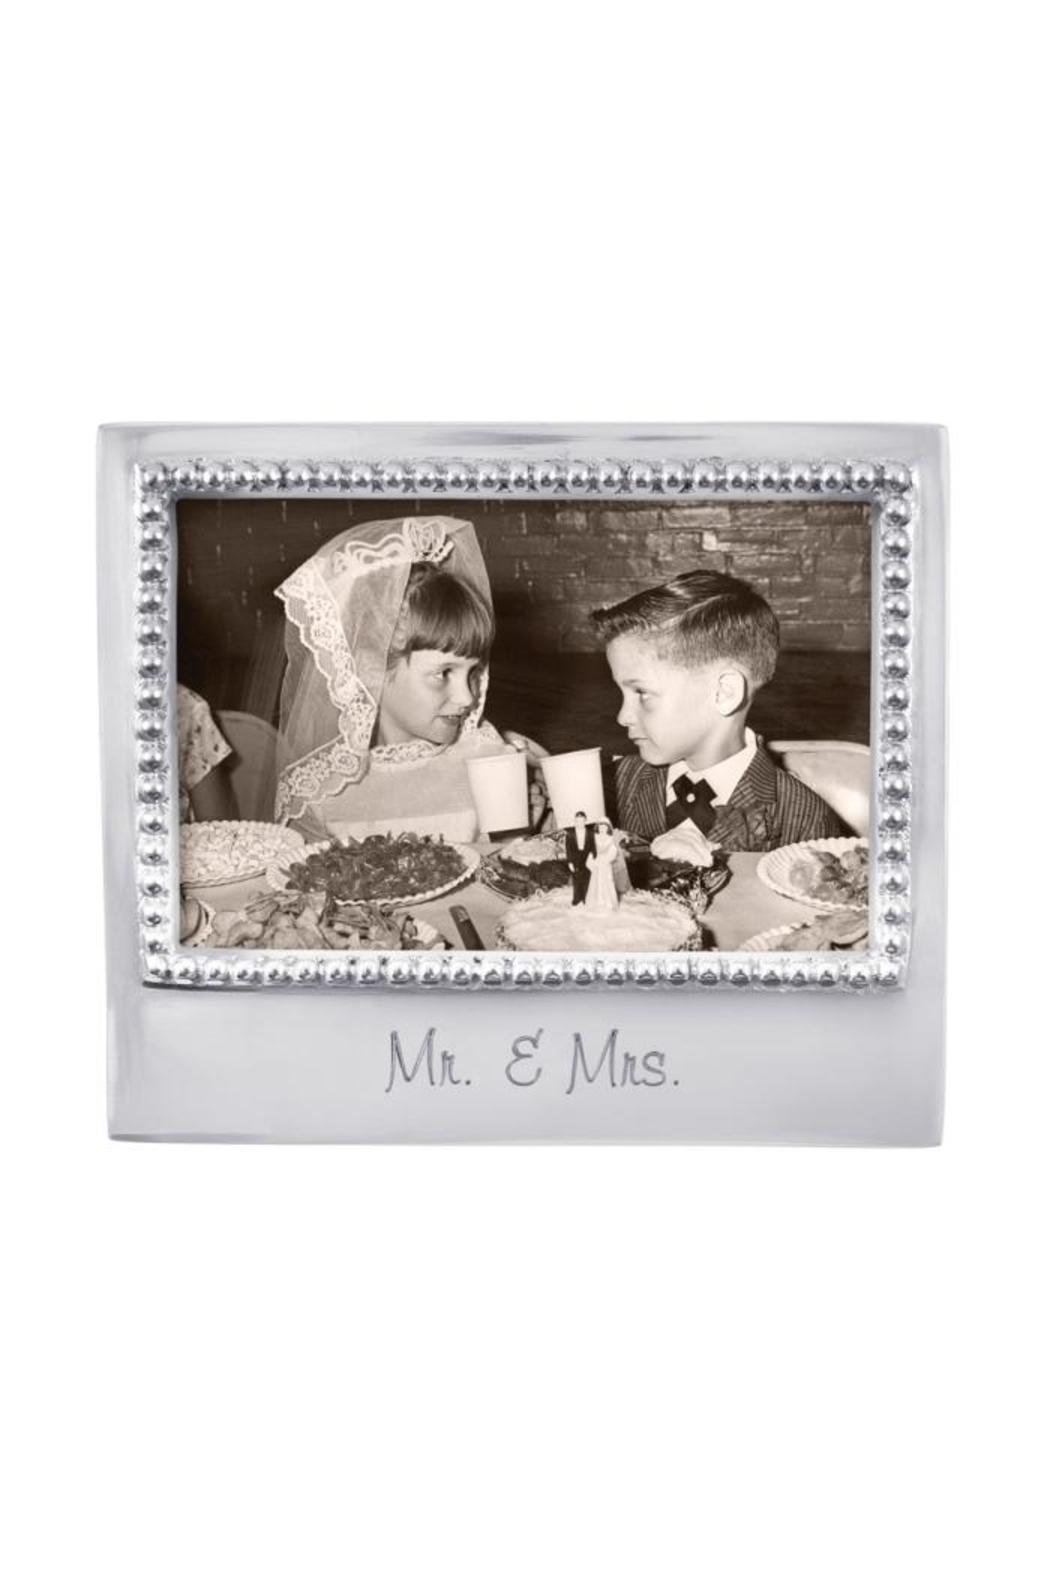 mariposa mr mrs frame front cropped image - Mr And Mrs Picture Frame